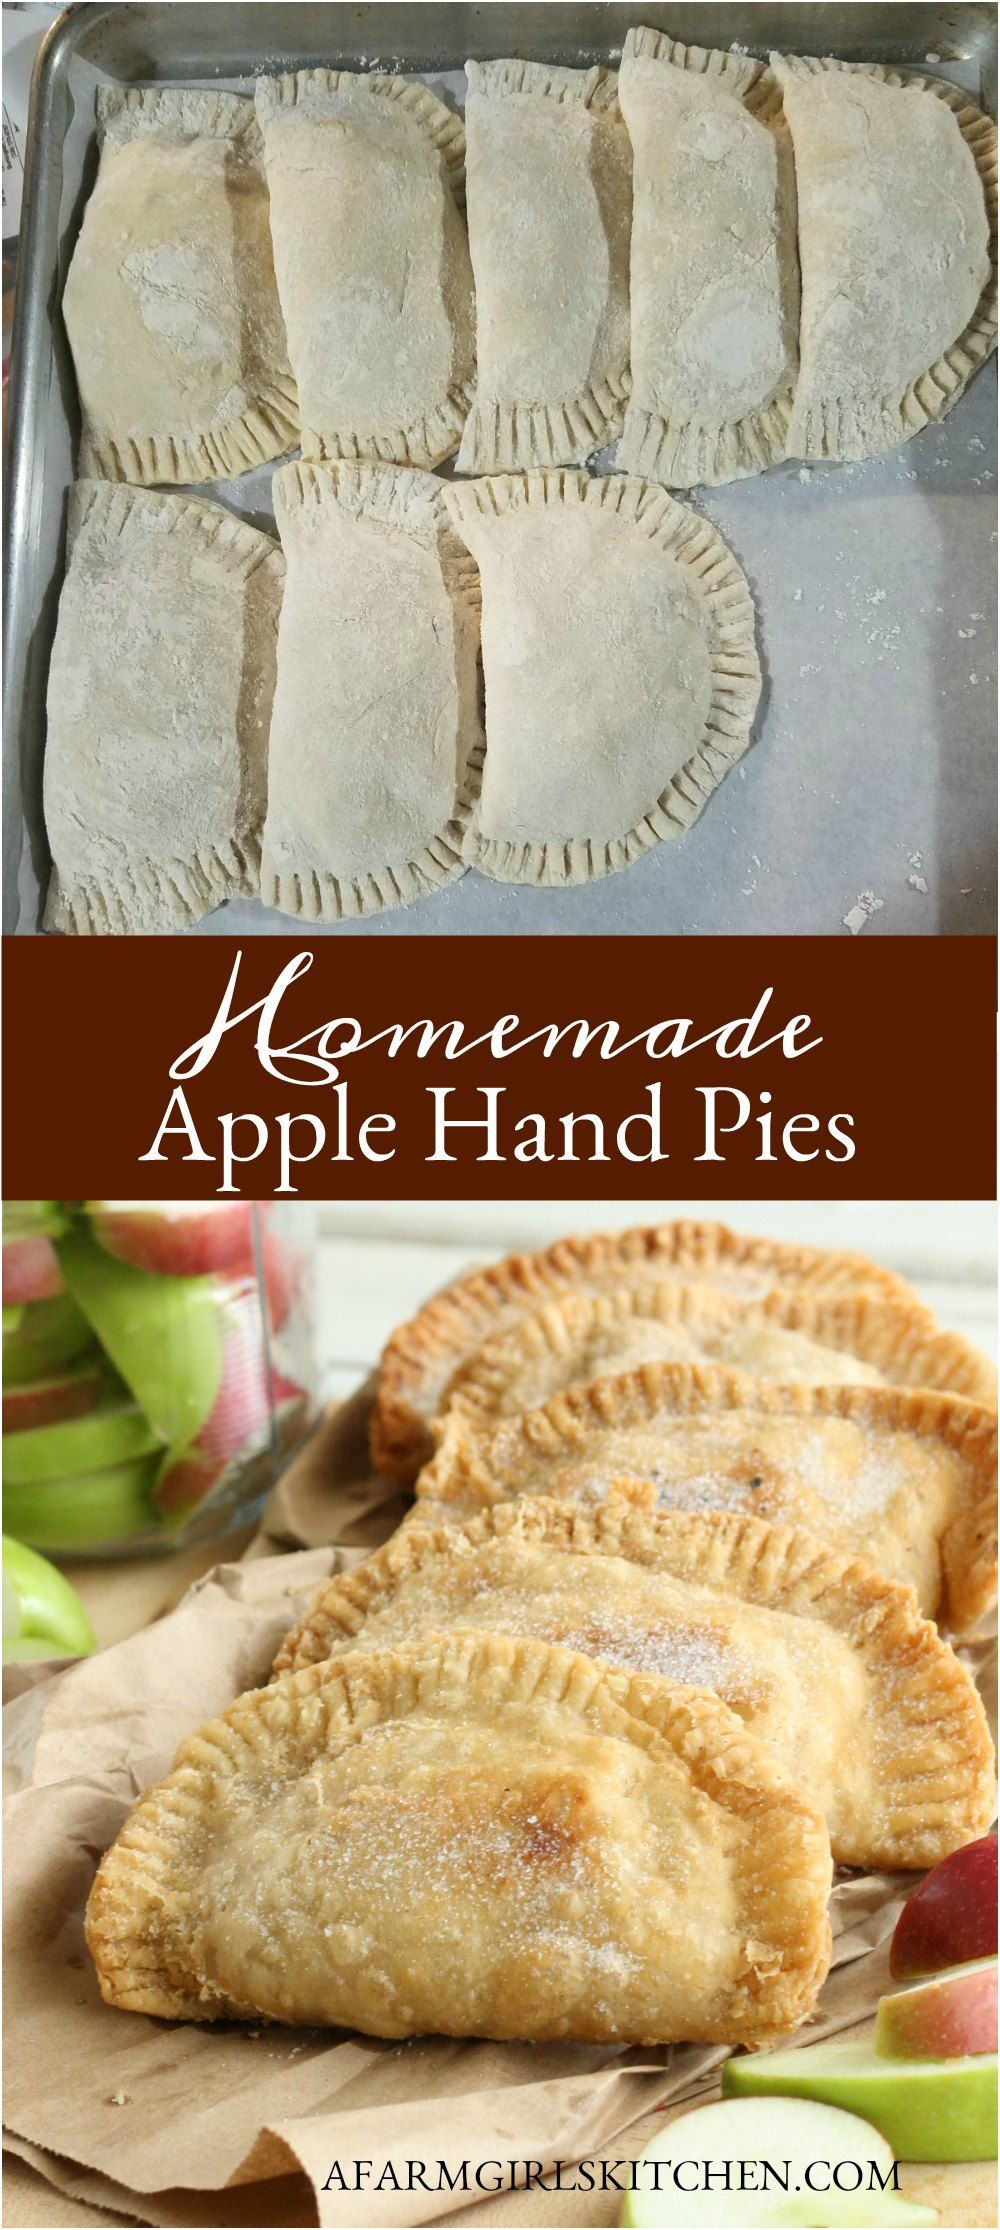 Homemade Apple Hand Pies (made with SIMPLE ingredients!)